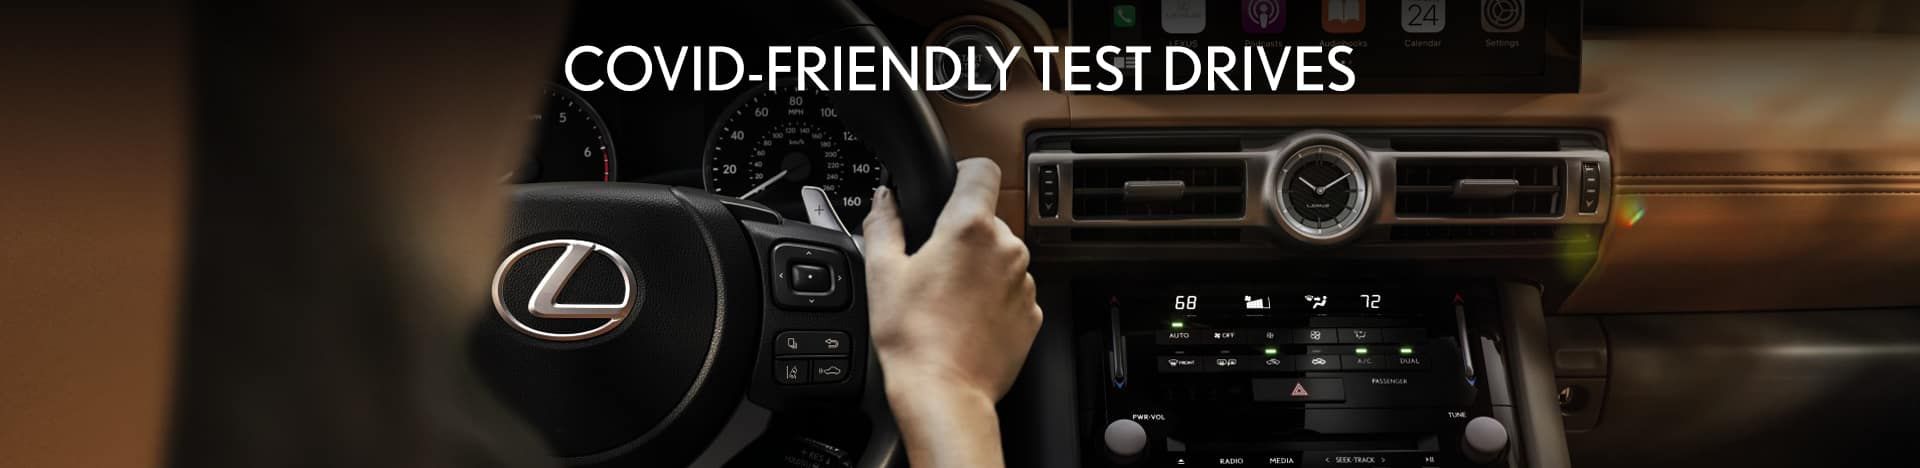 Schedule an appointment with us for a COVID-friendly test drive in Doylestown, PA